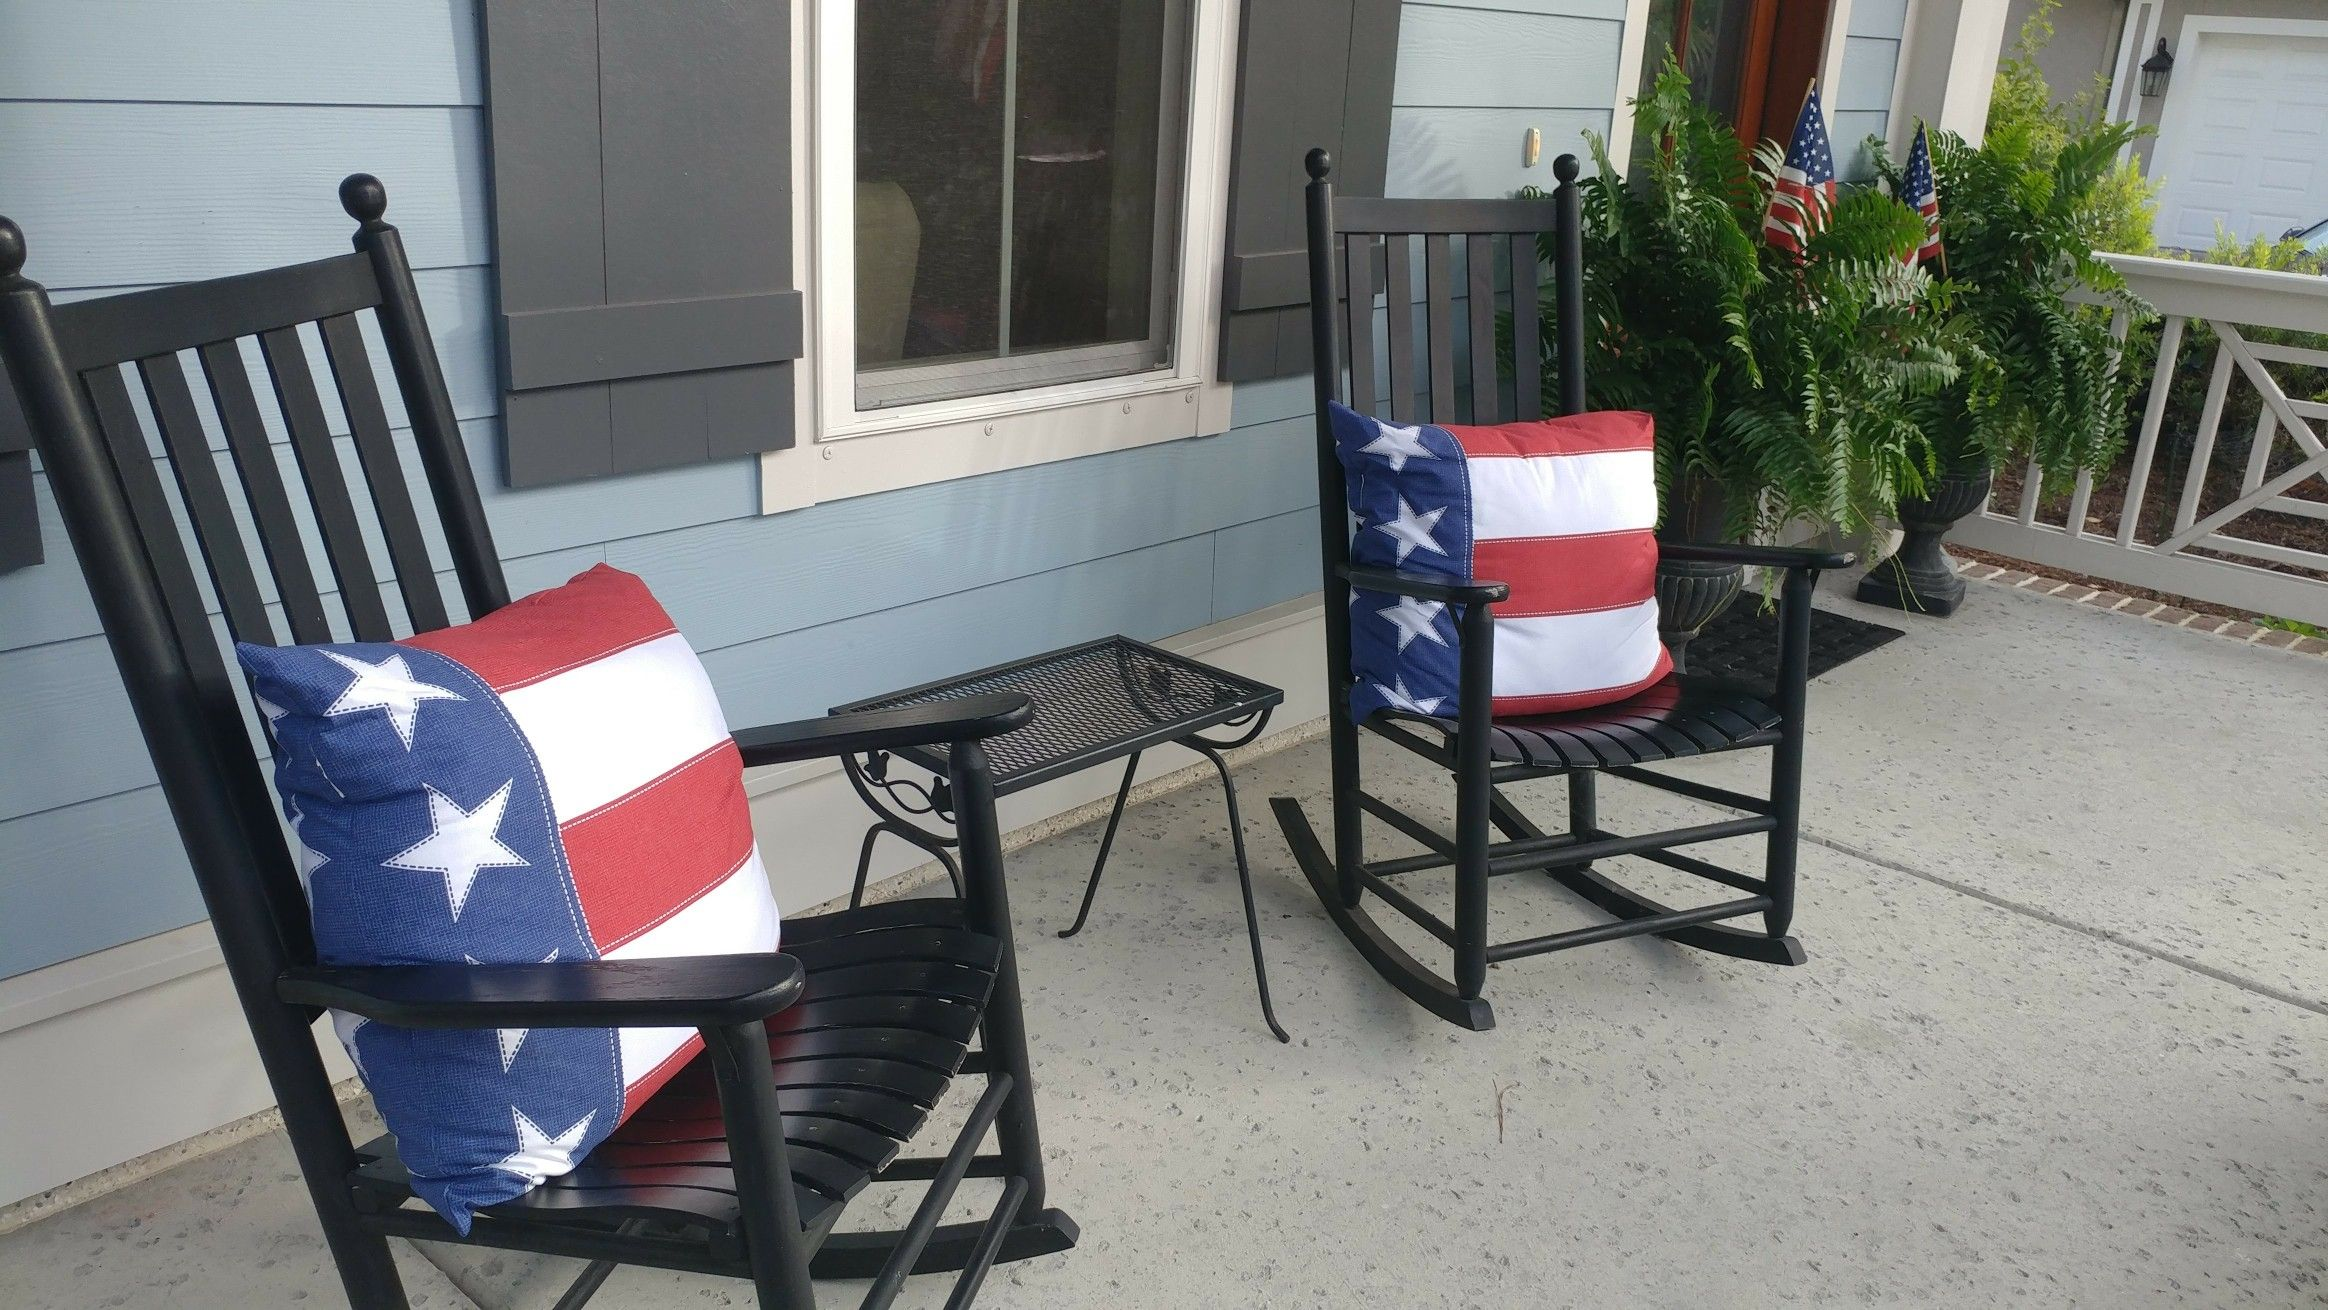 Pin by Liz Allred on Memorial Day/July 4th Outdoor